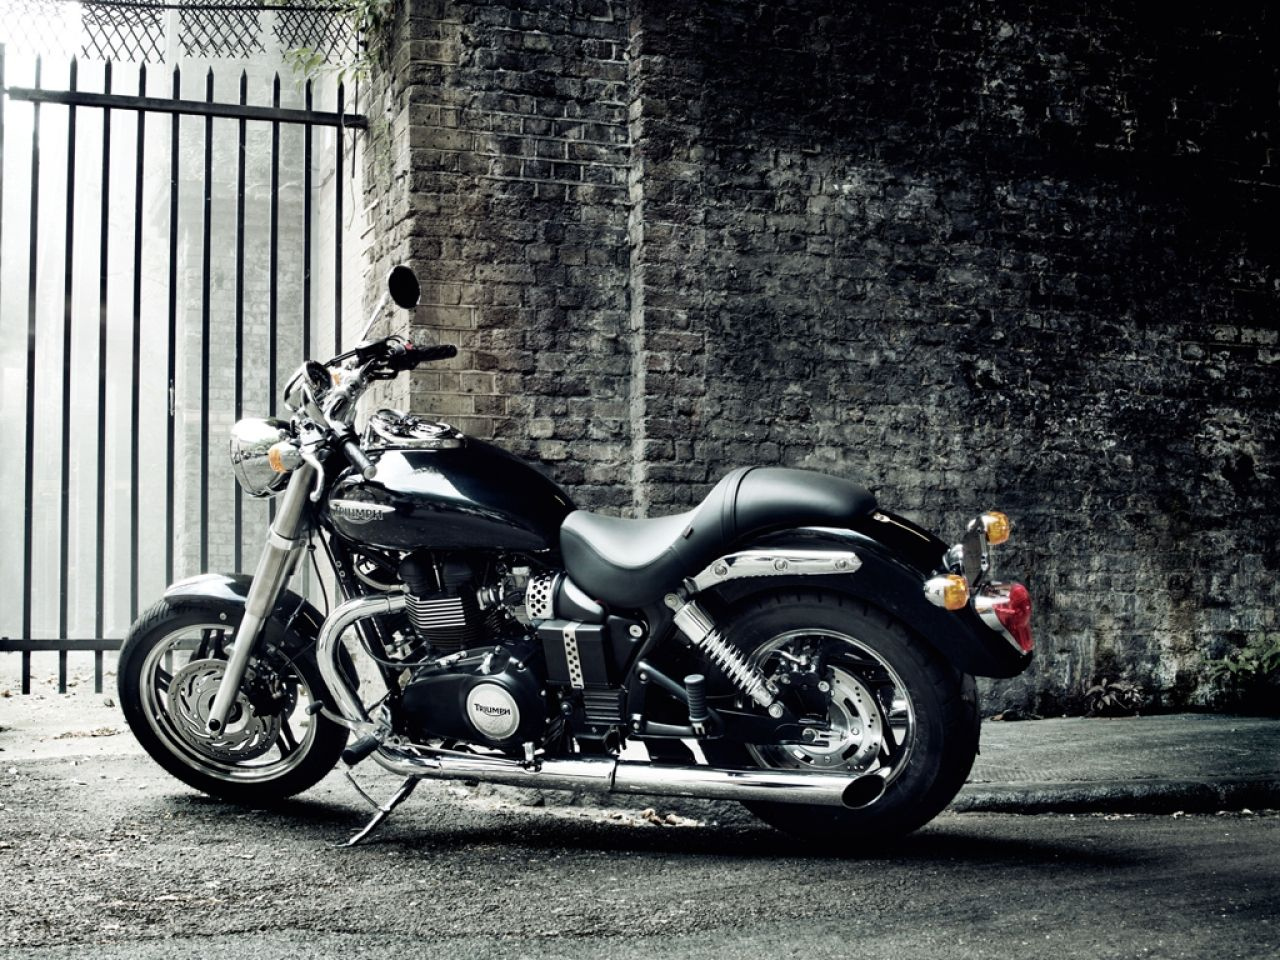 bmw motorcycles cruiser background 1 hd wallpapers | motorcycles